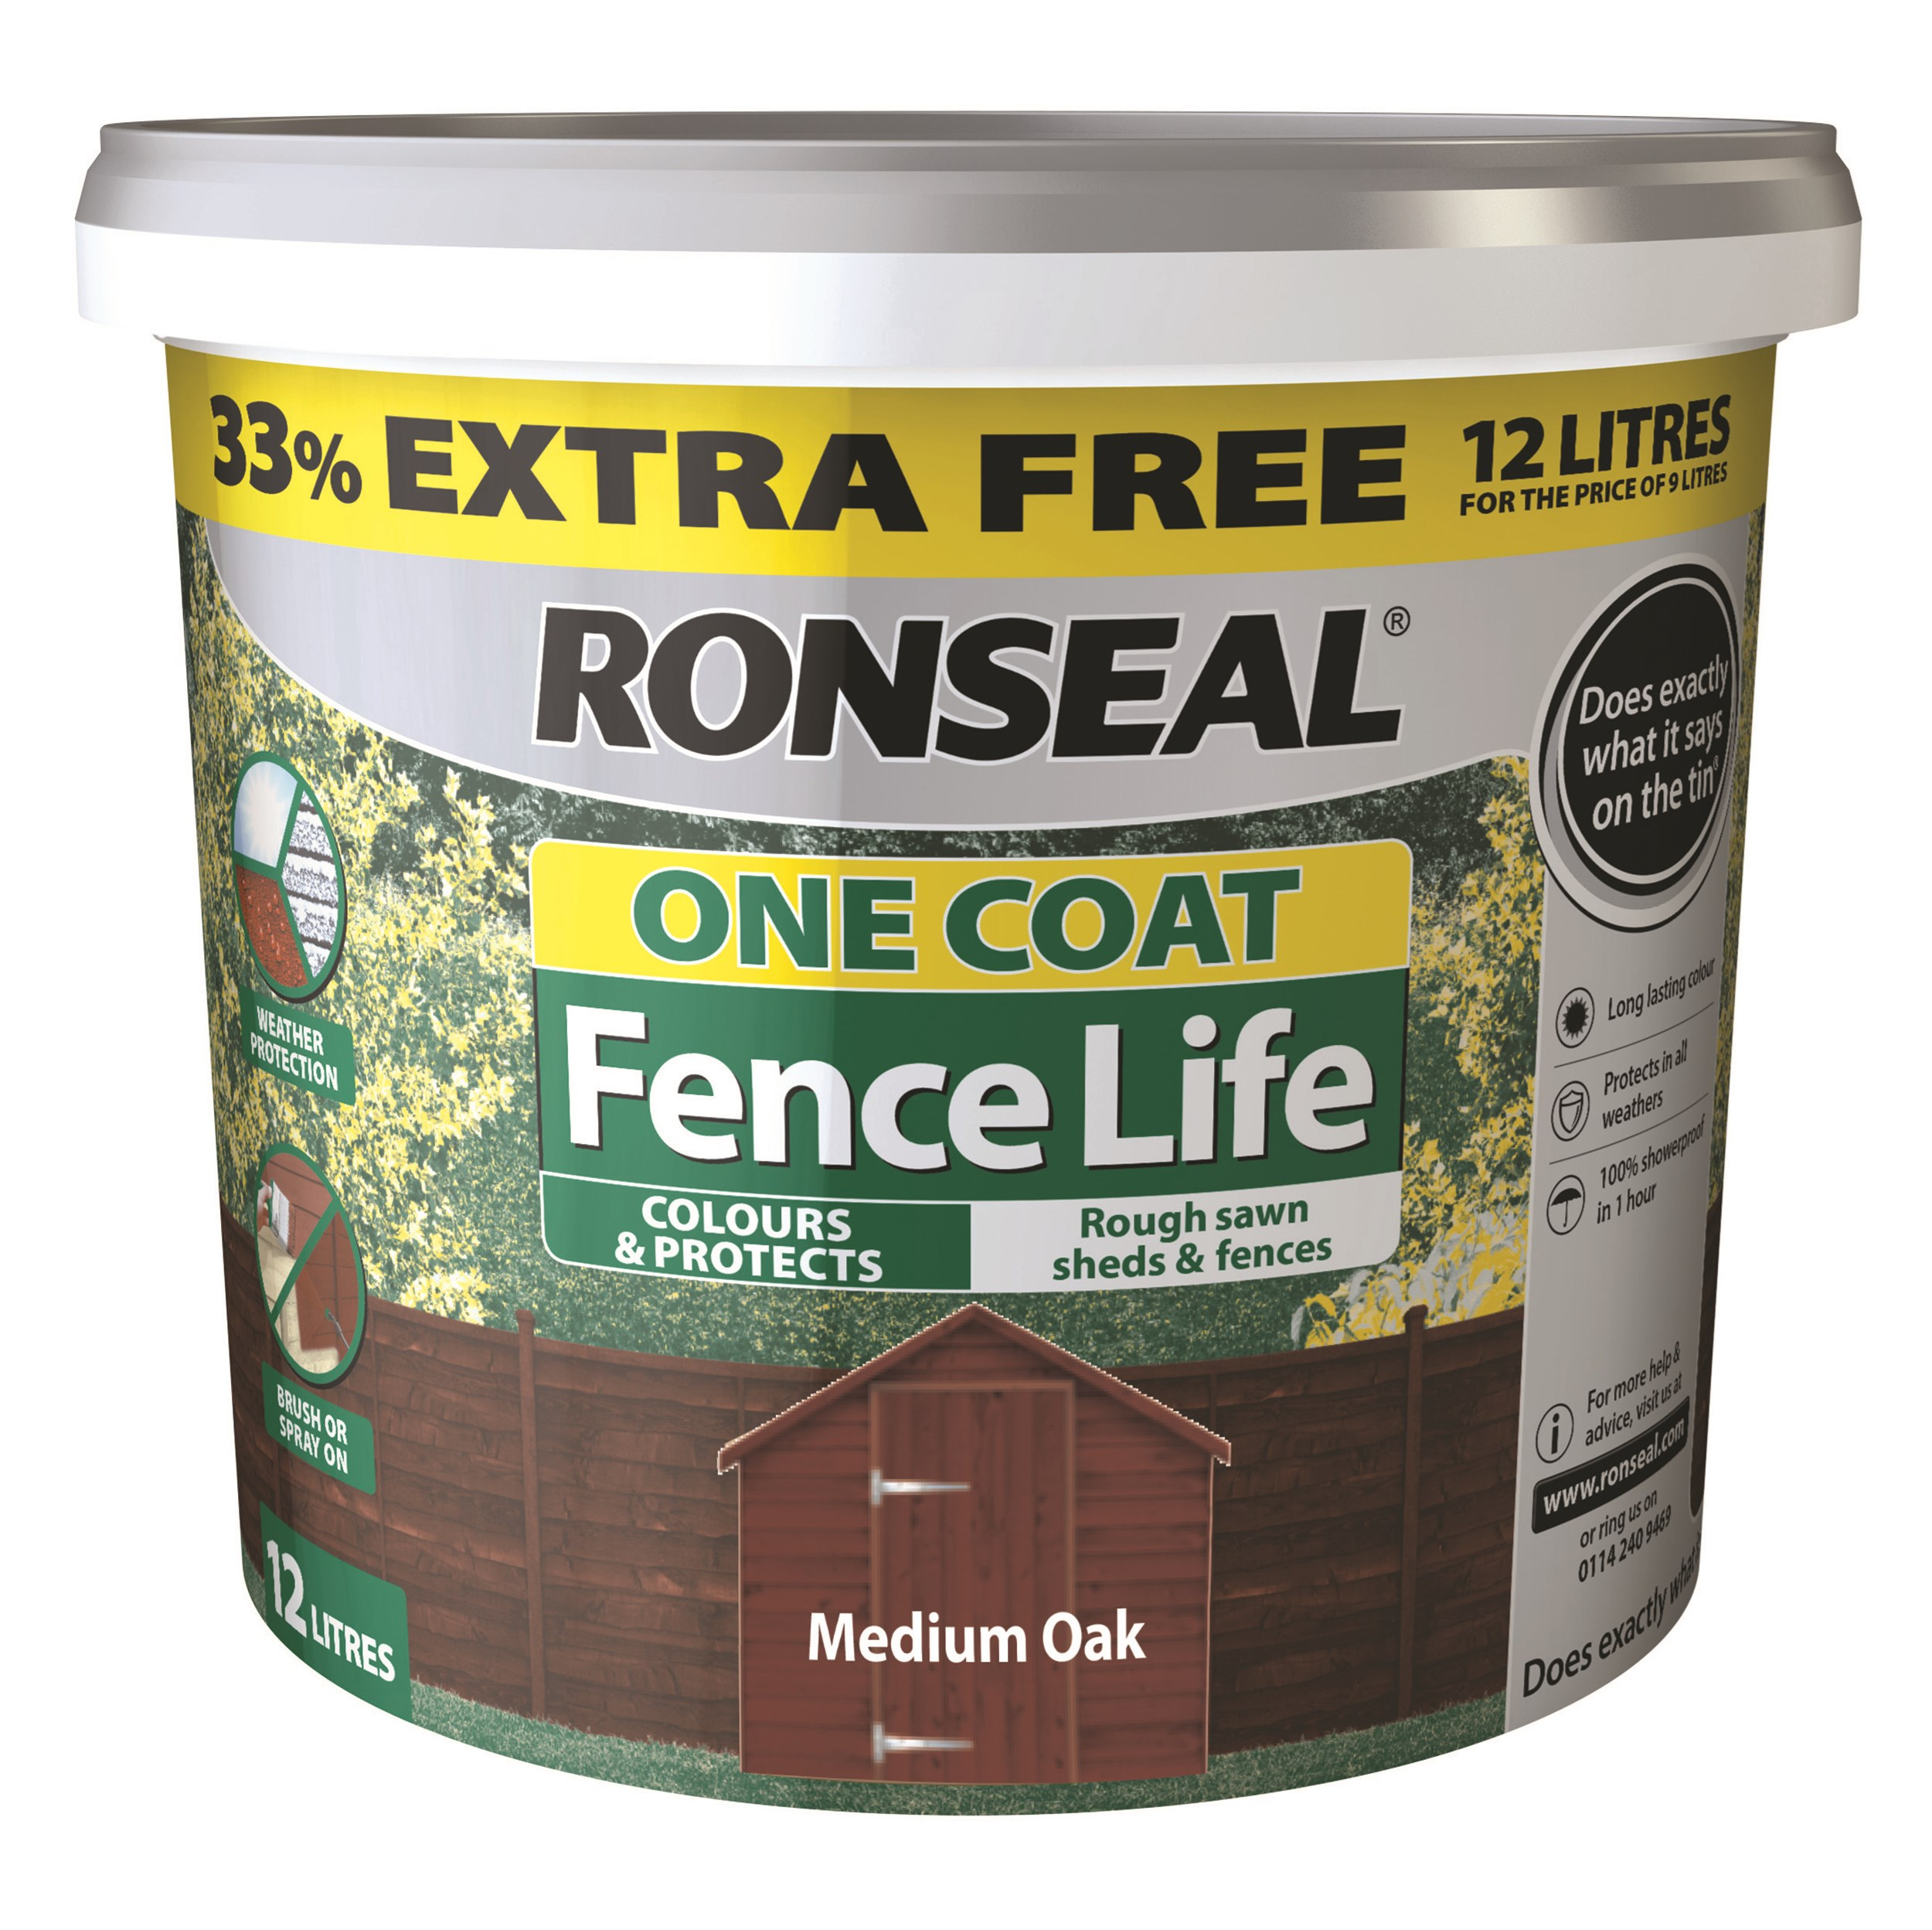 Ronseal  One Coat Fence Life - 9 Litre + 33% Extra Free